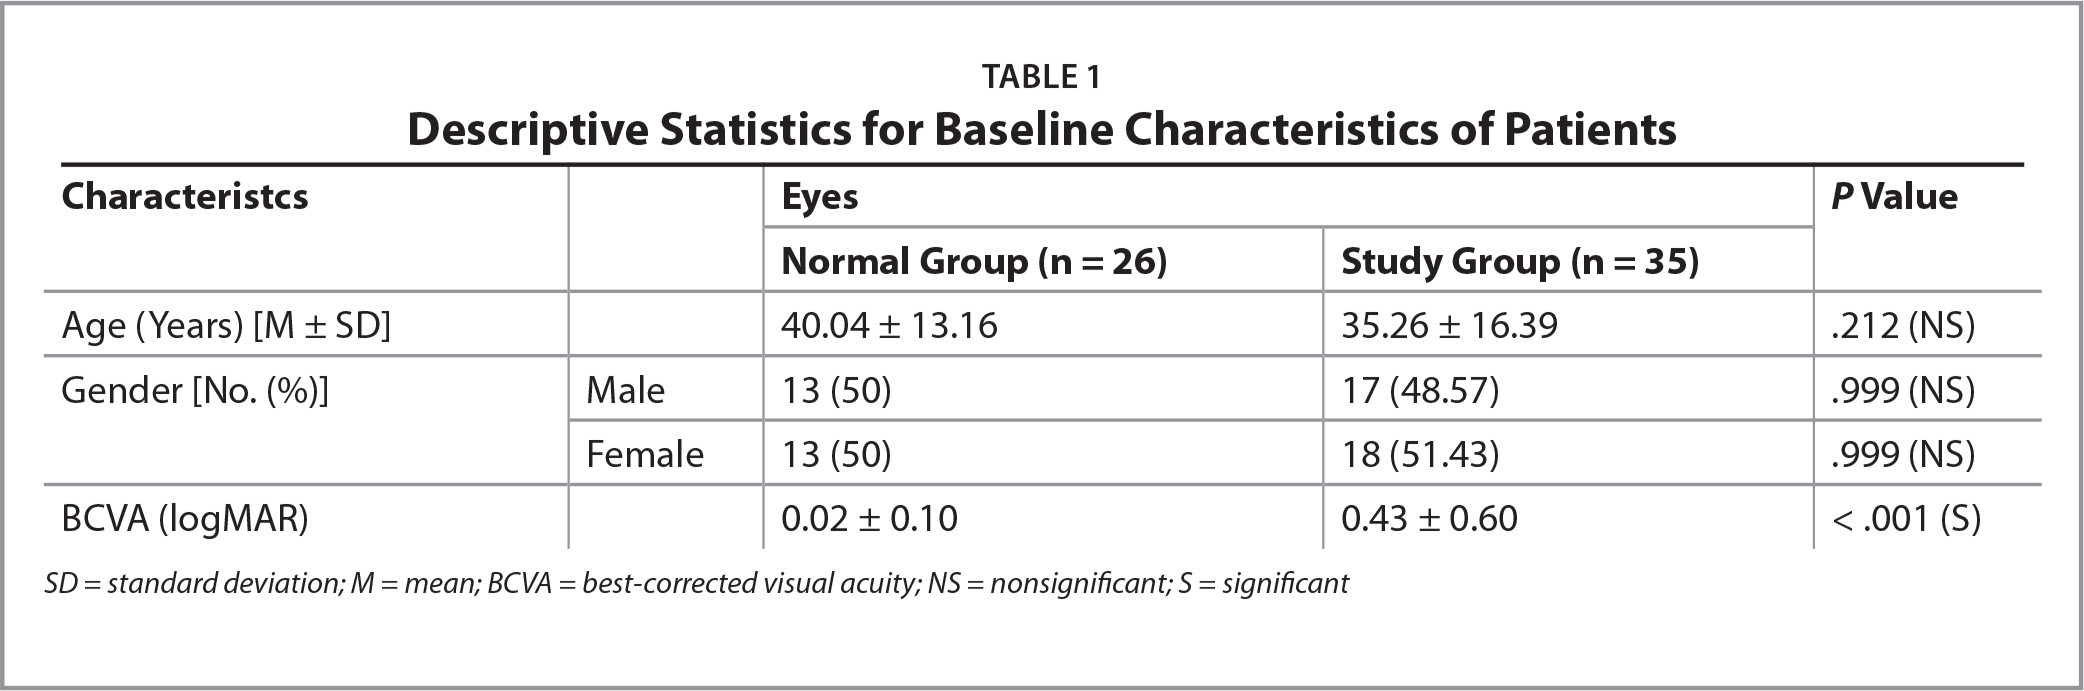 Descriptive Statistics for Baseline Characteristics of Patients